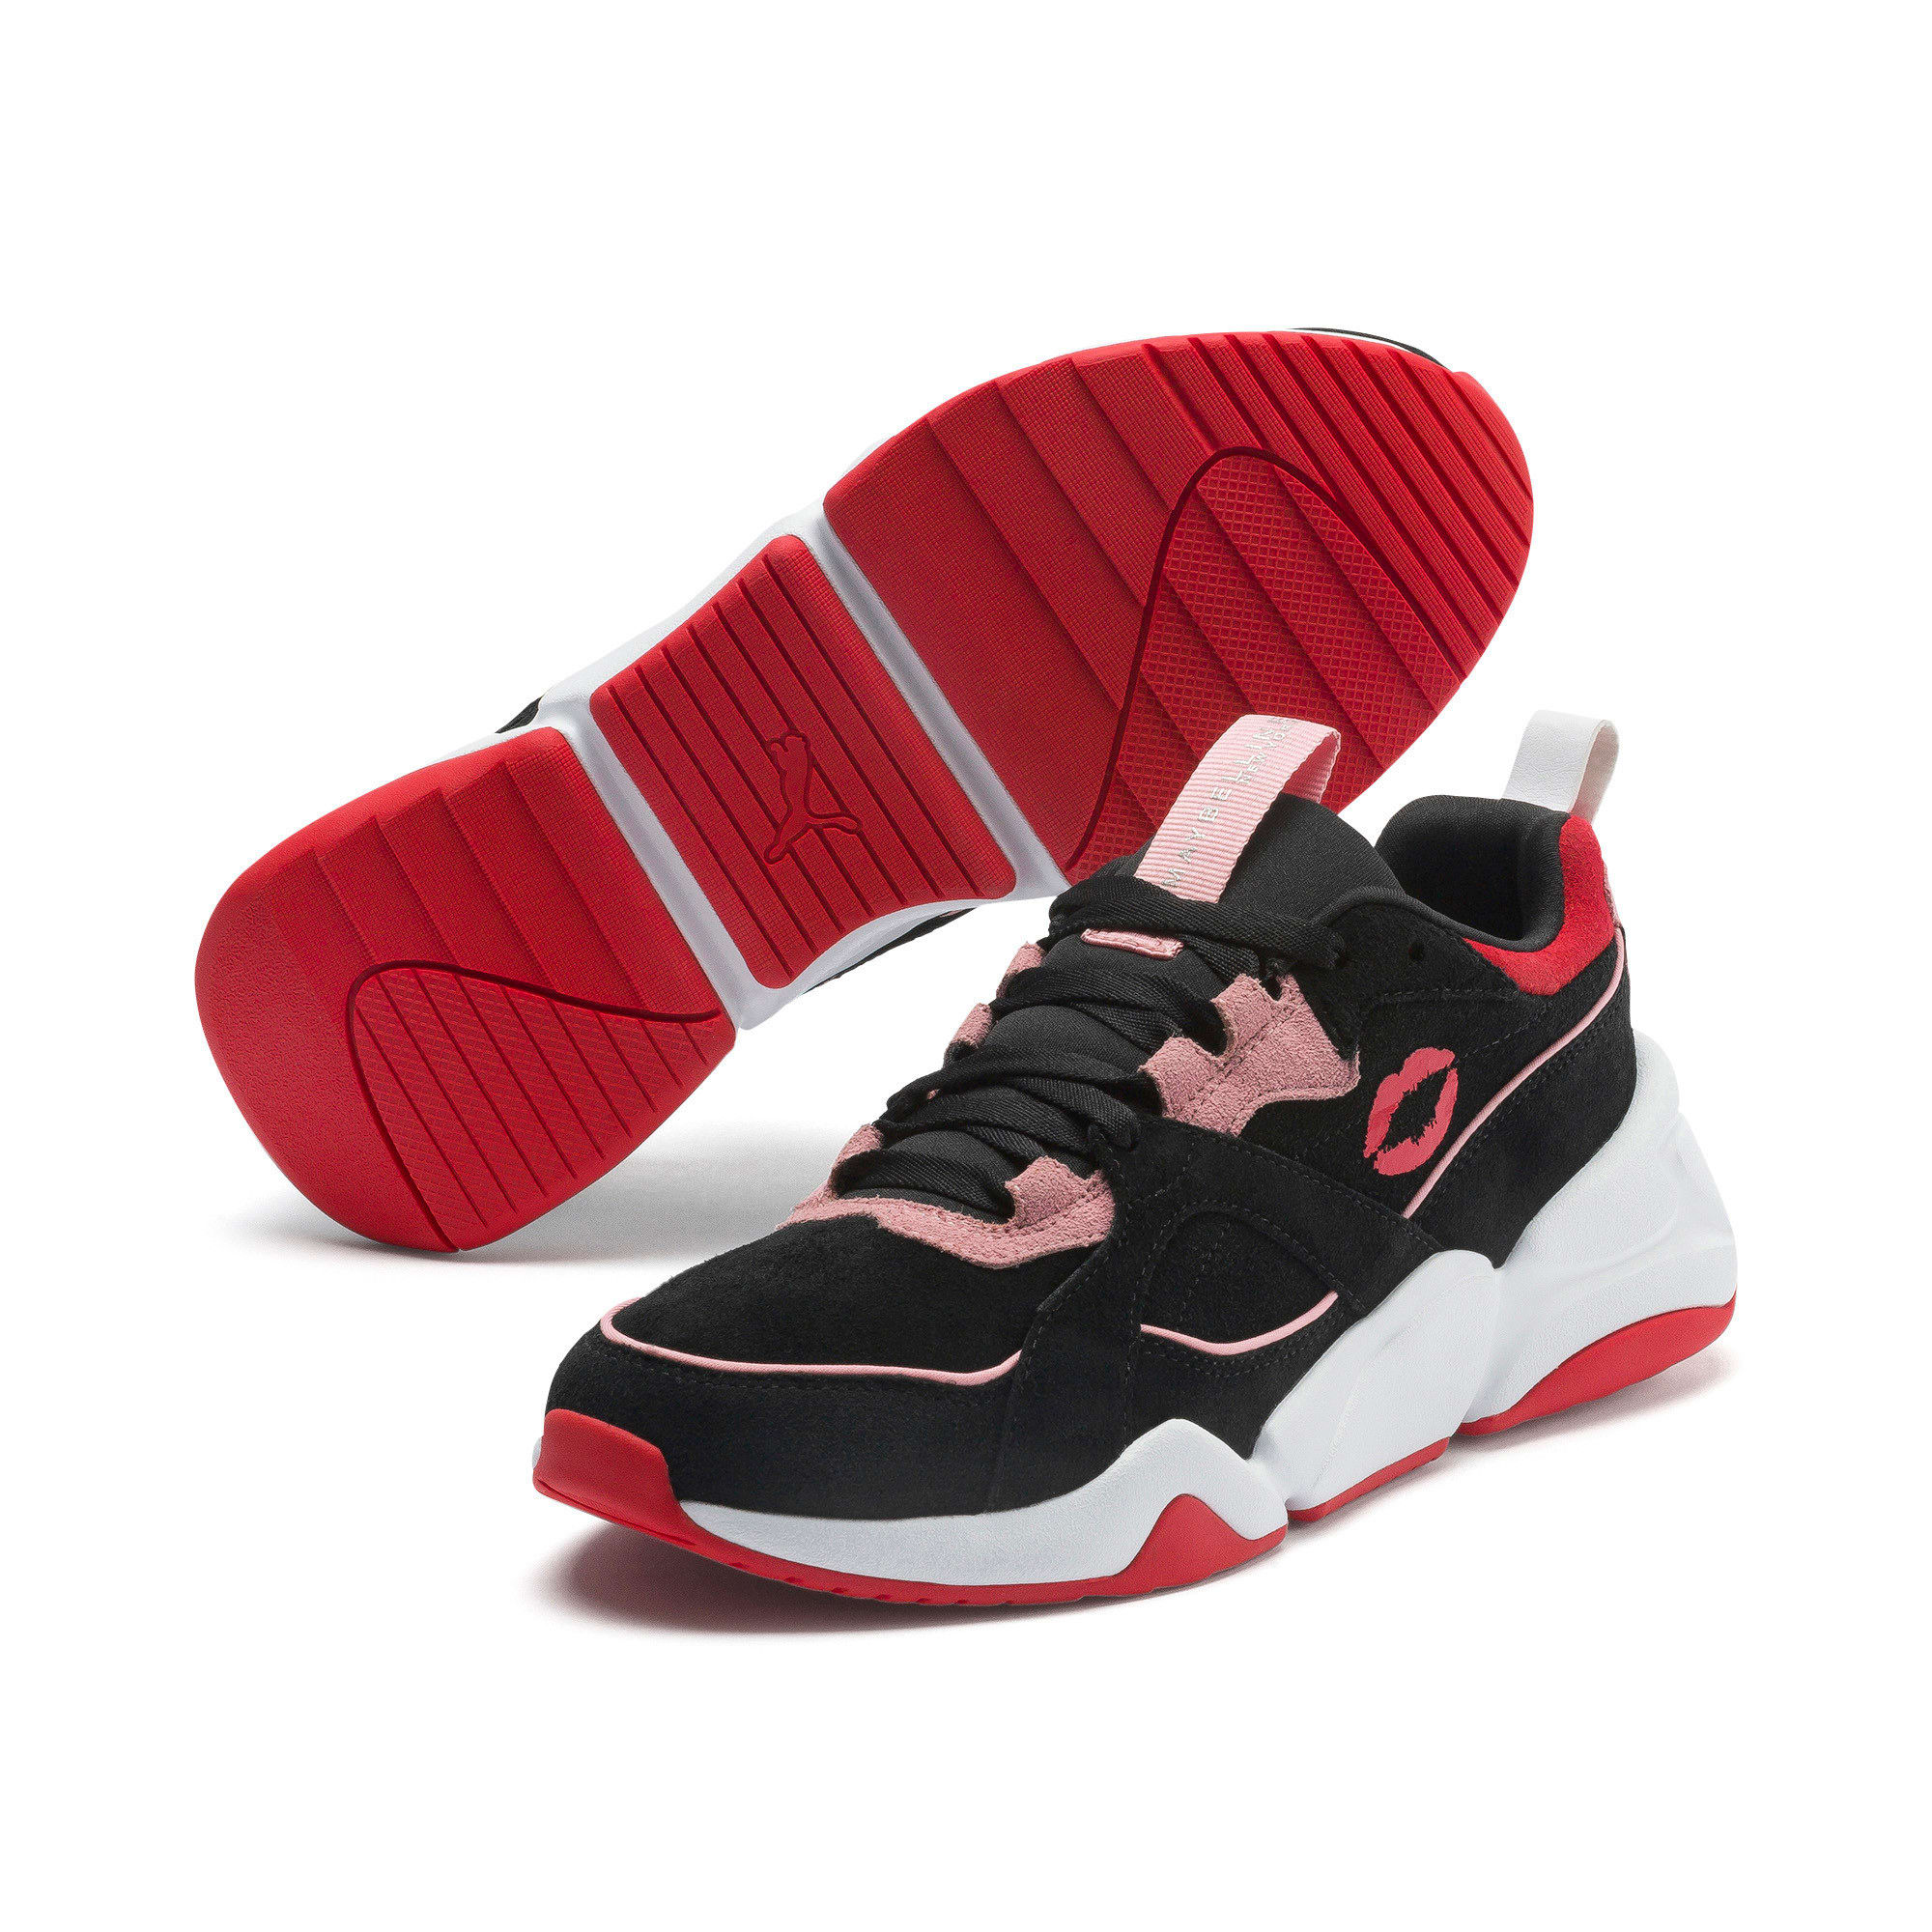 PUMA x MAYBELLINE Nova Women's Sneakers, Puma Black-Candy Pink, large